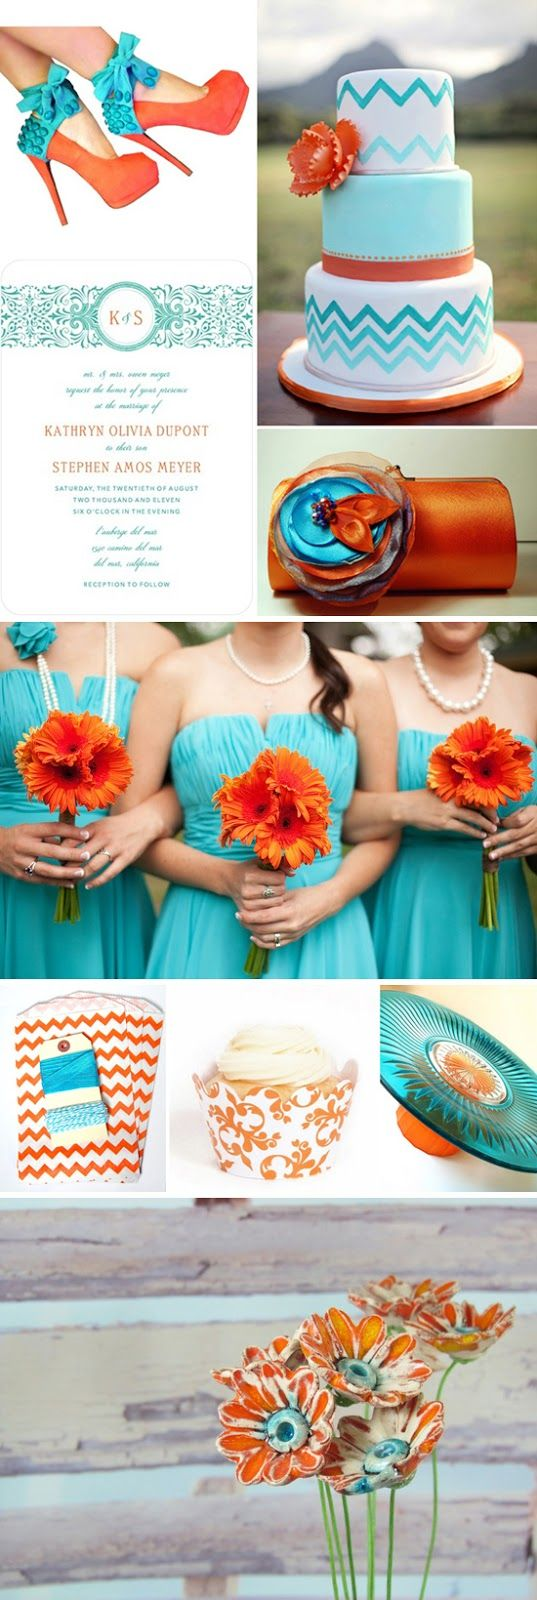 {Inspiration Boards} Turquoise & Orange ~ Savvy Deets Bridal - A Wedding Blog